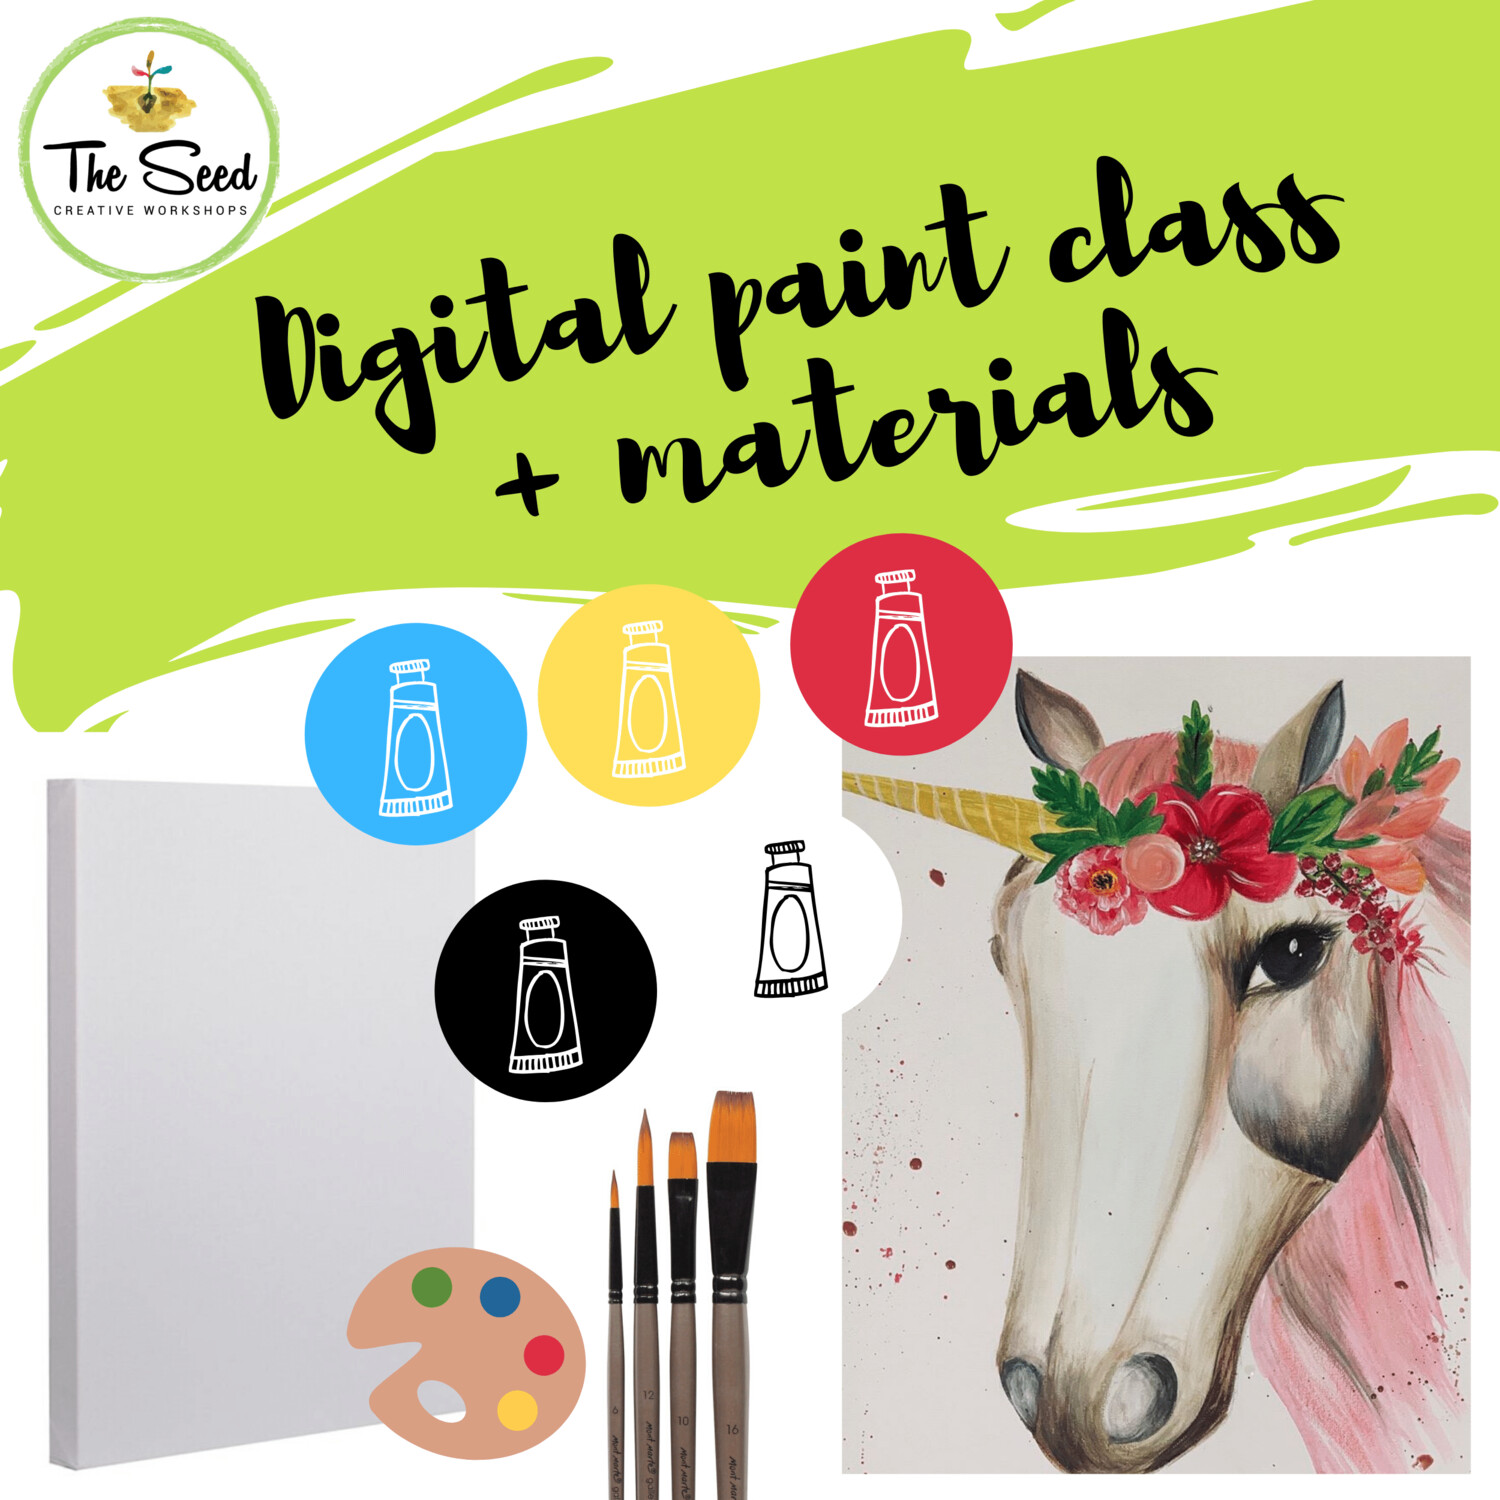 Unicorn Digital painting class + materials